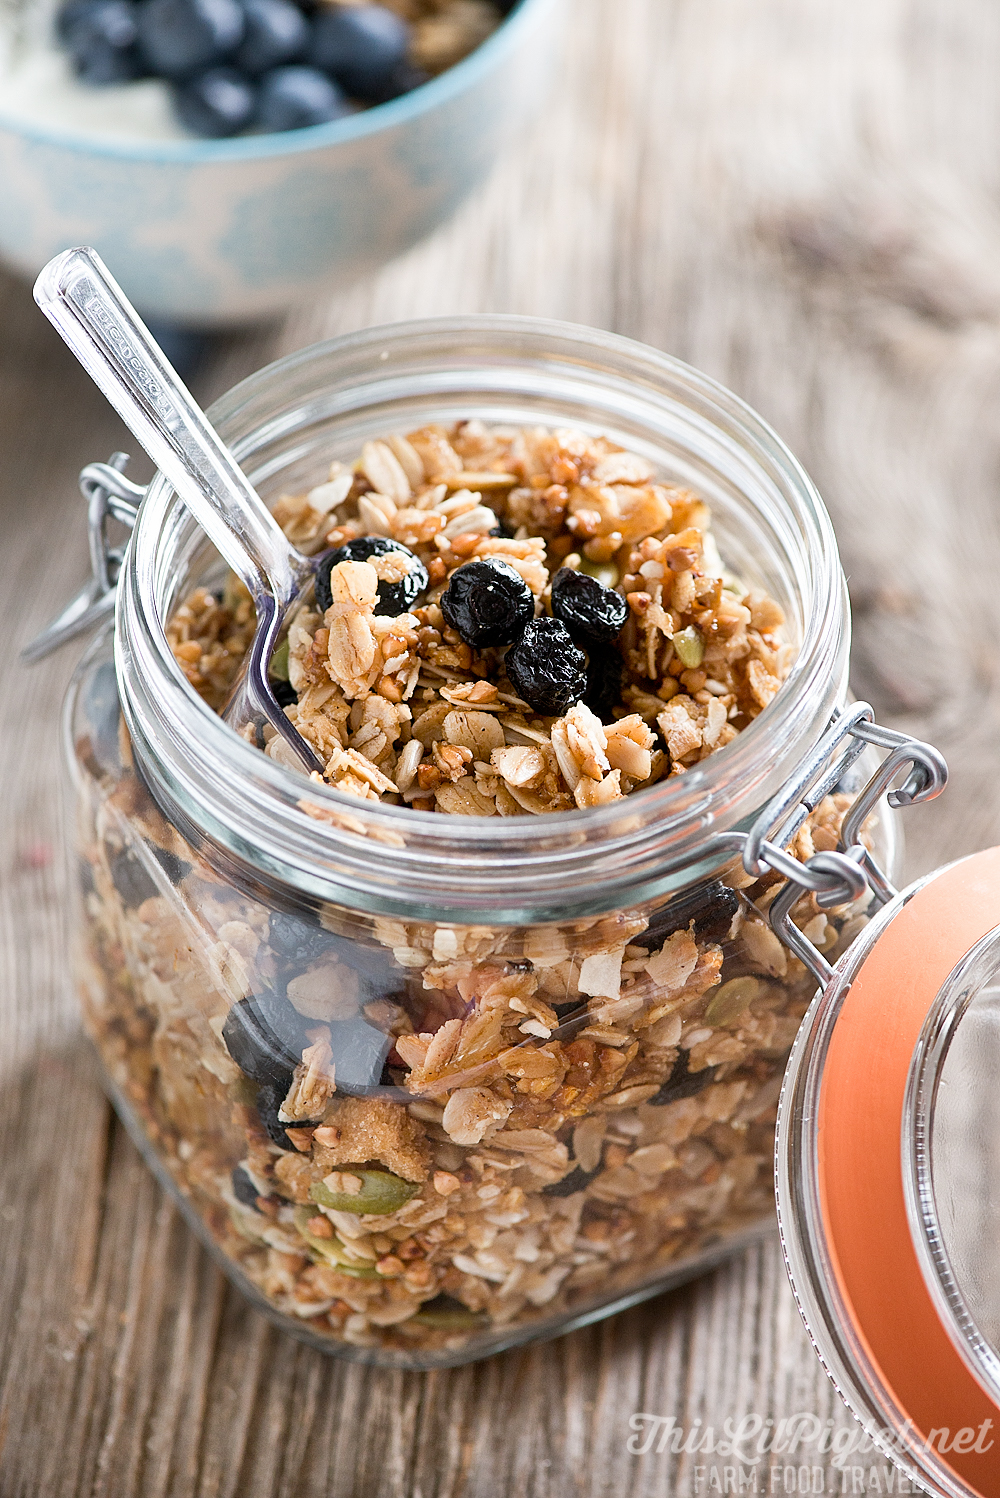 Blueberry Kasha Honey Homemade Granola Jar // thislilpiglet.net